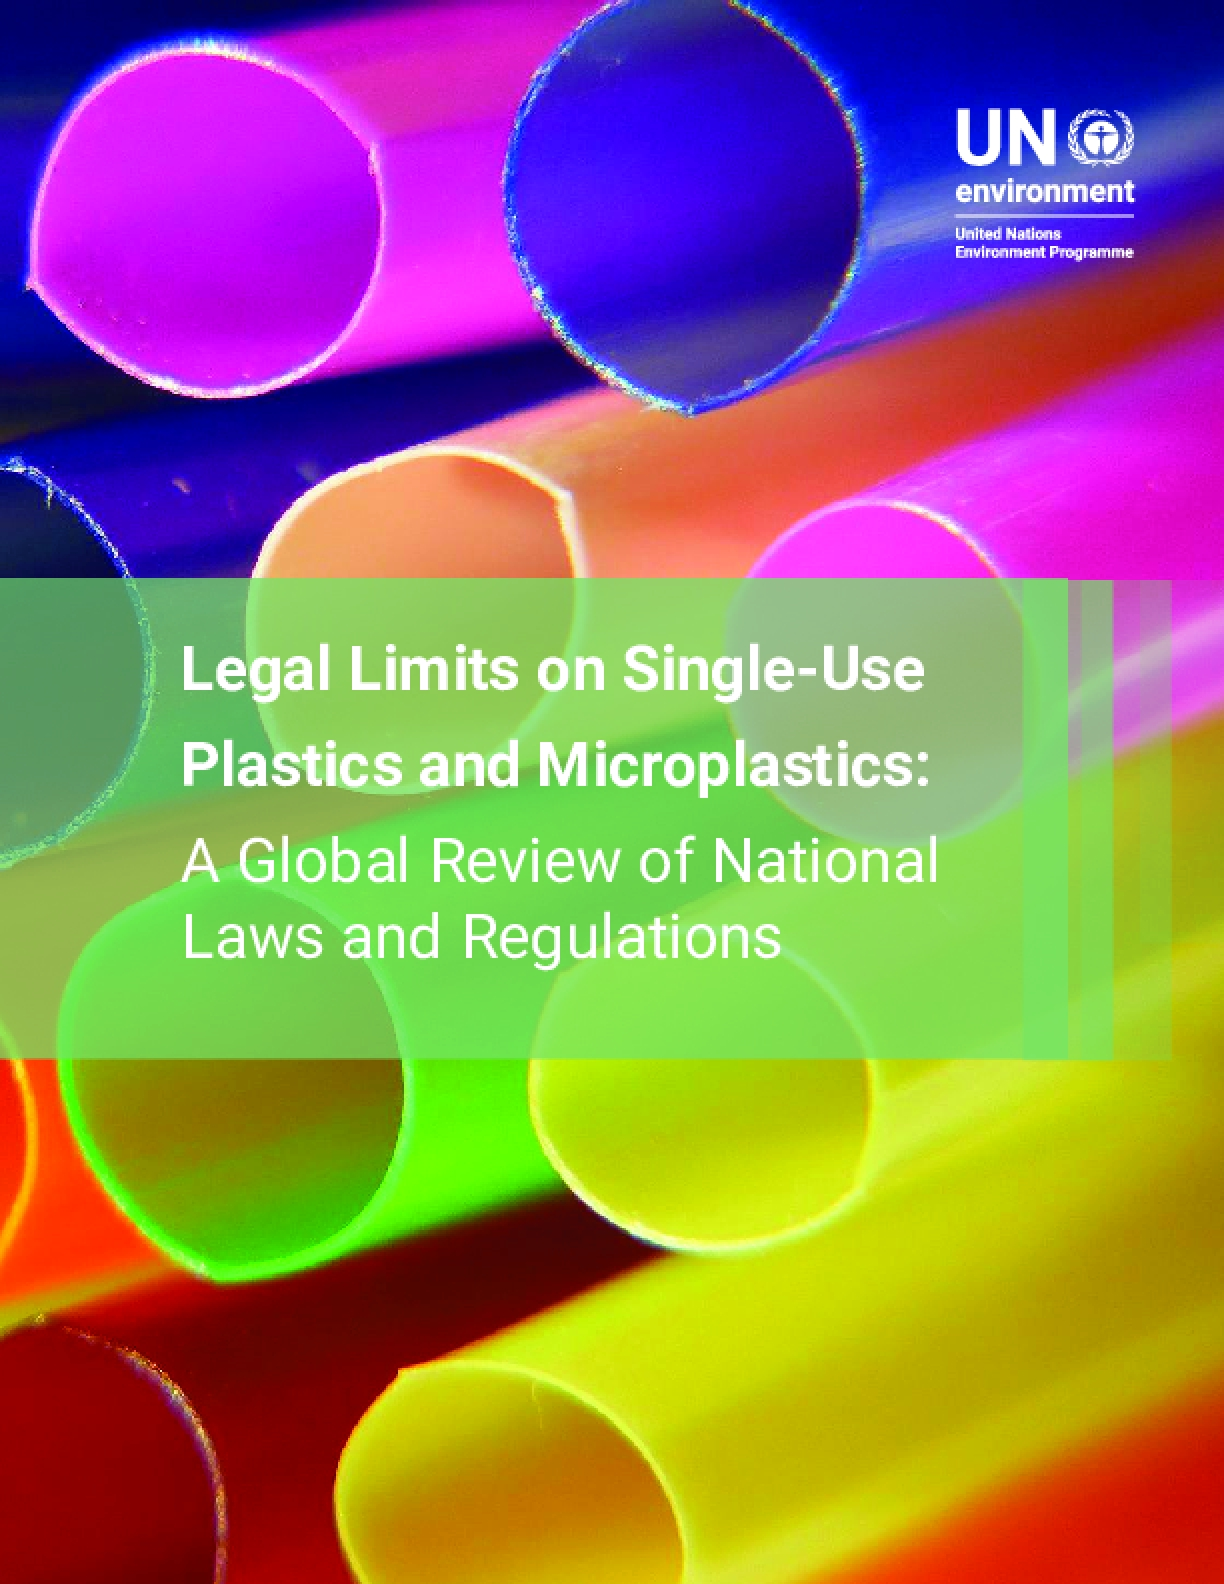 Legal Limits on Single-Use Plastics and Microplastics: A Global Review of National Laws and Regulations